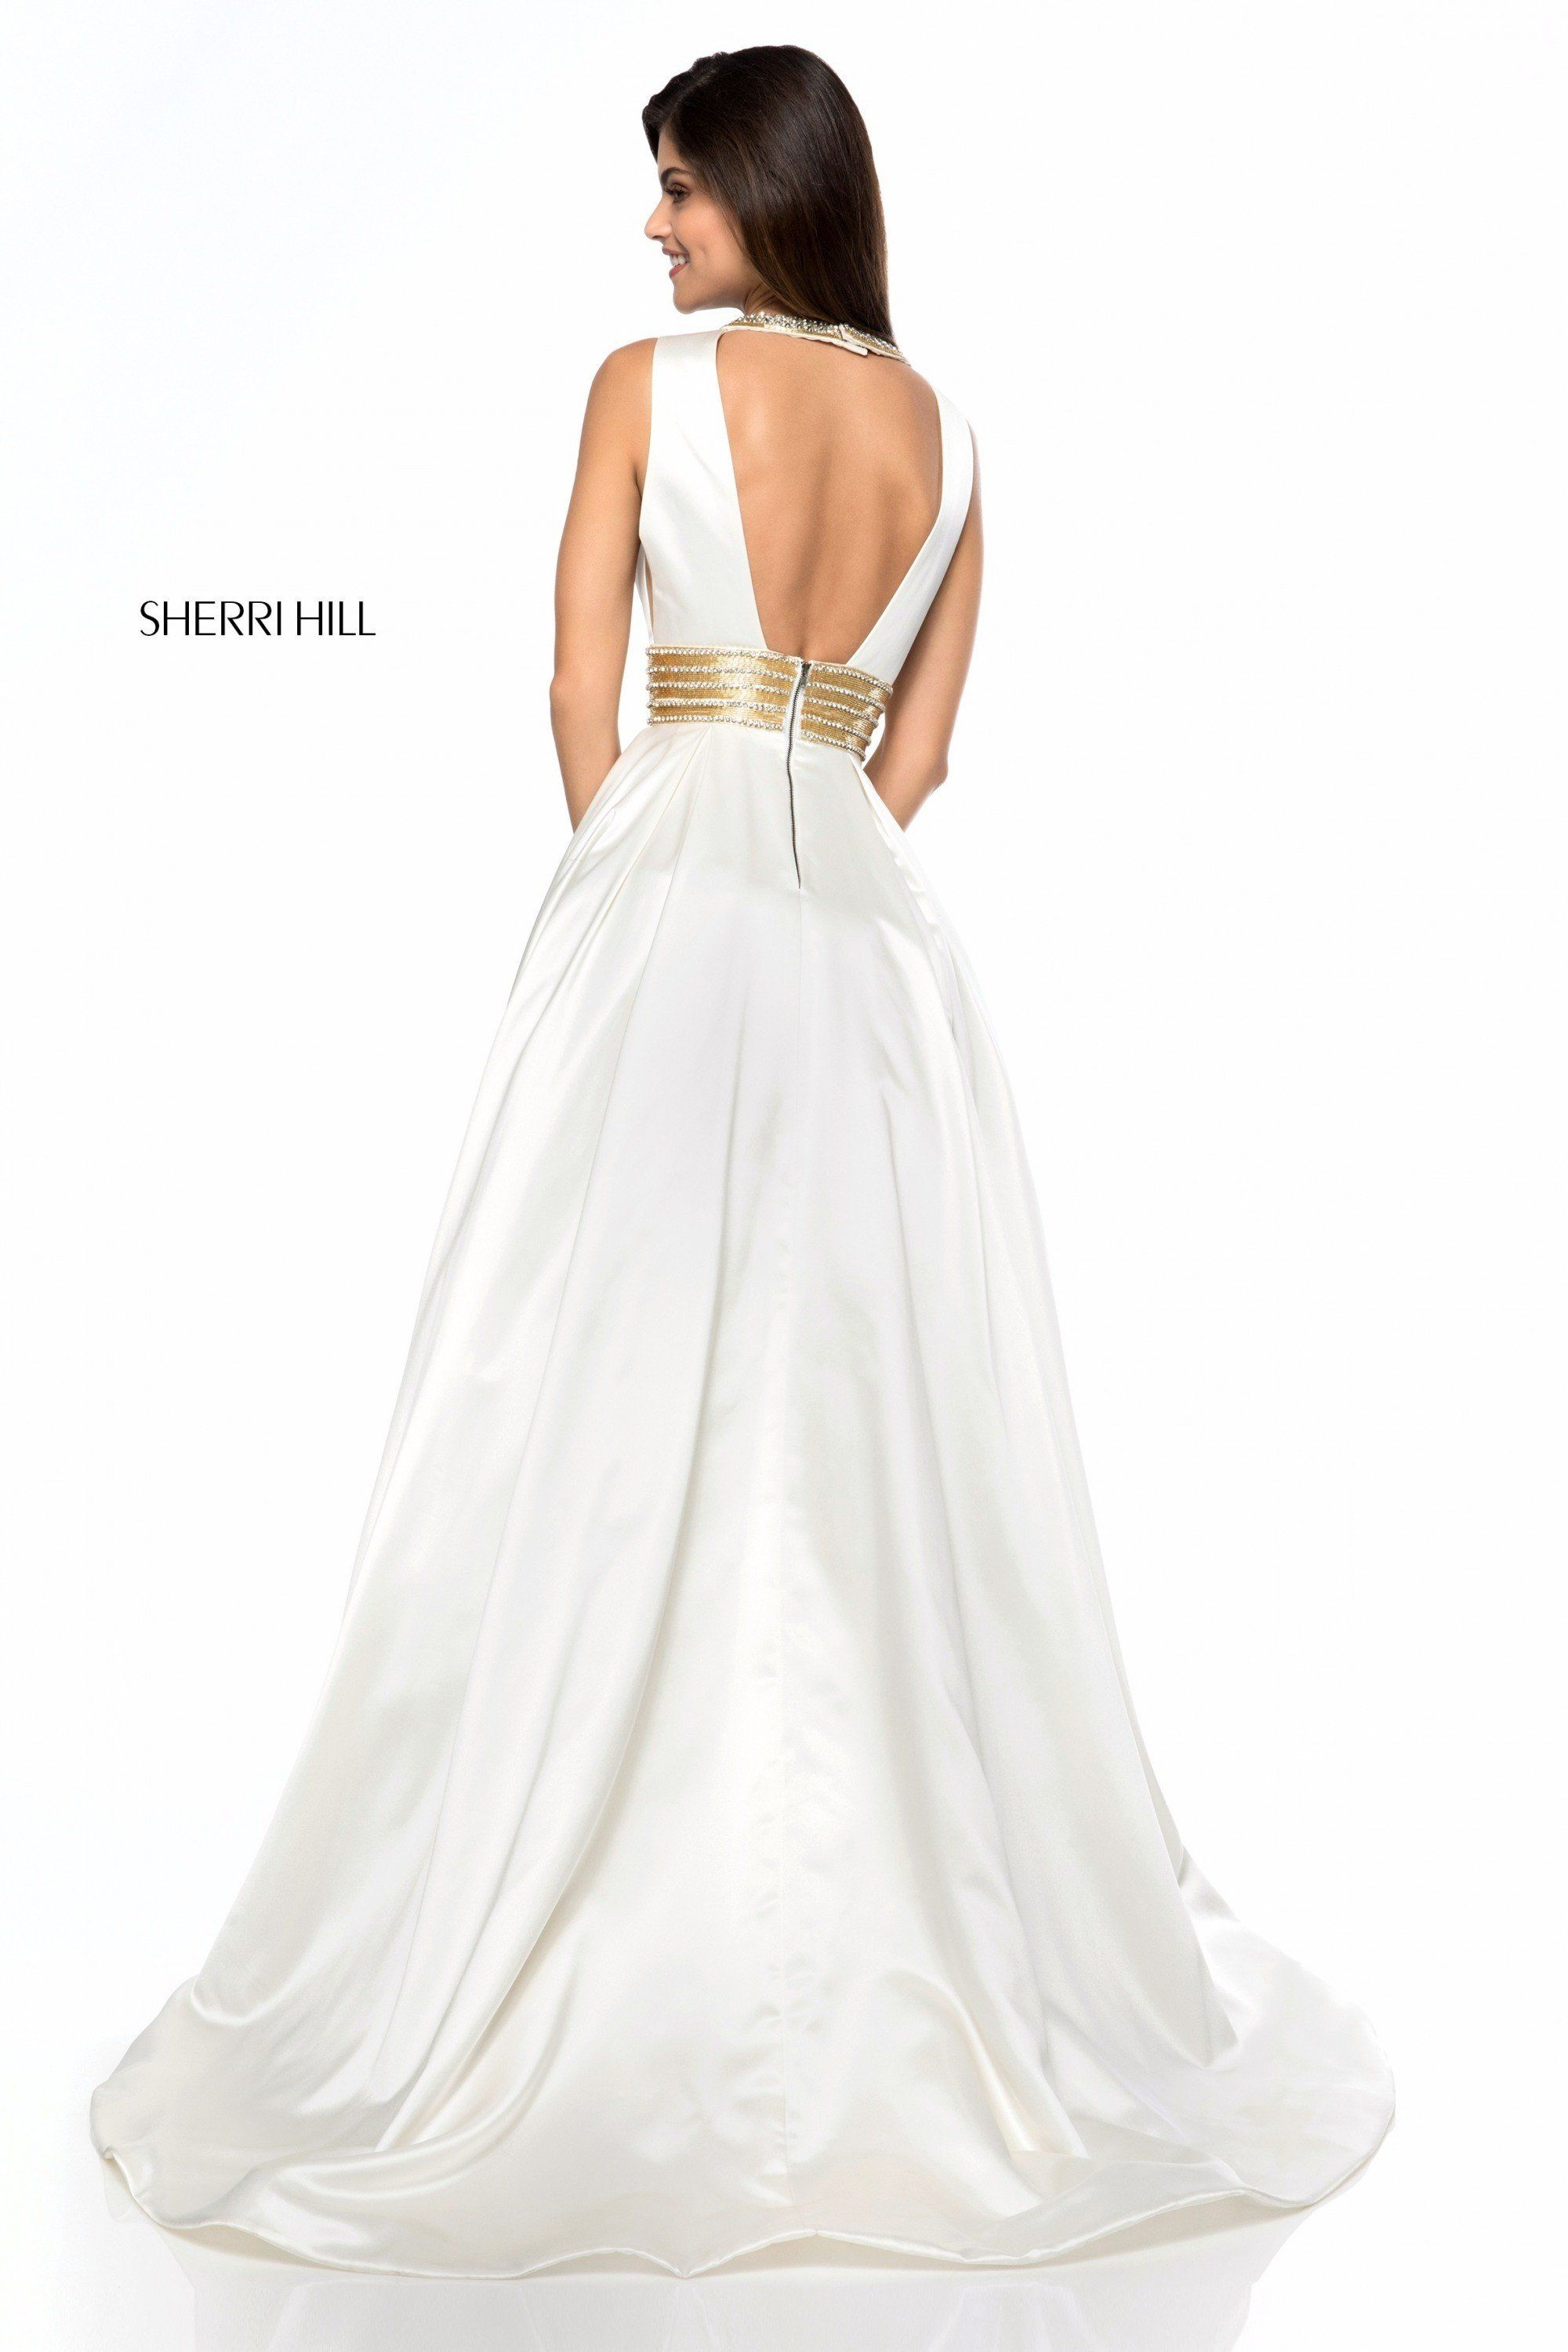 Sherri Hill 51802 Plunge Satin Ball Gown with Pockets | Ball gowns ...